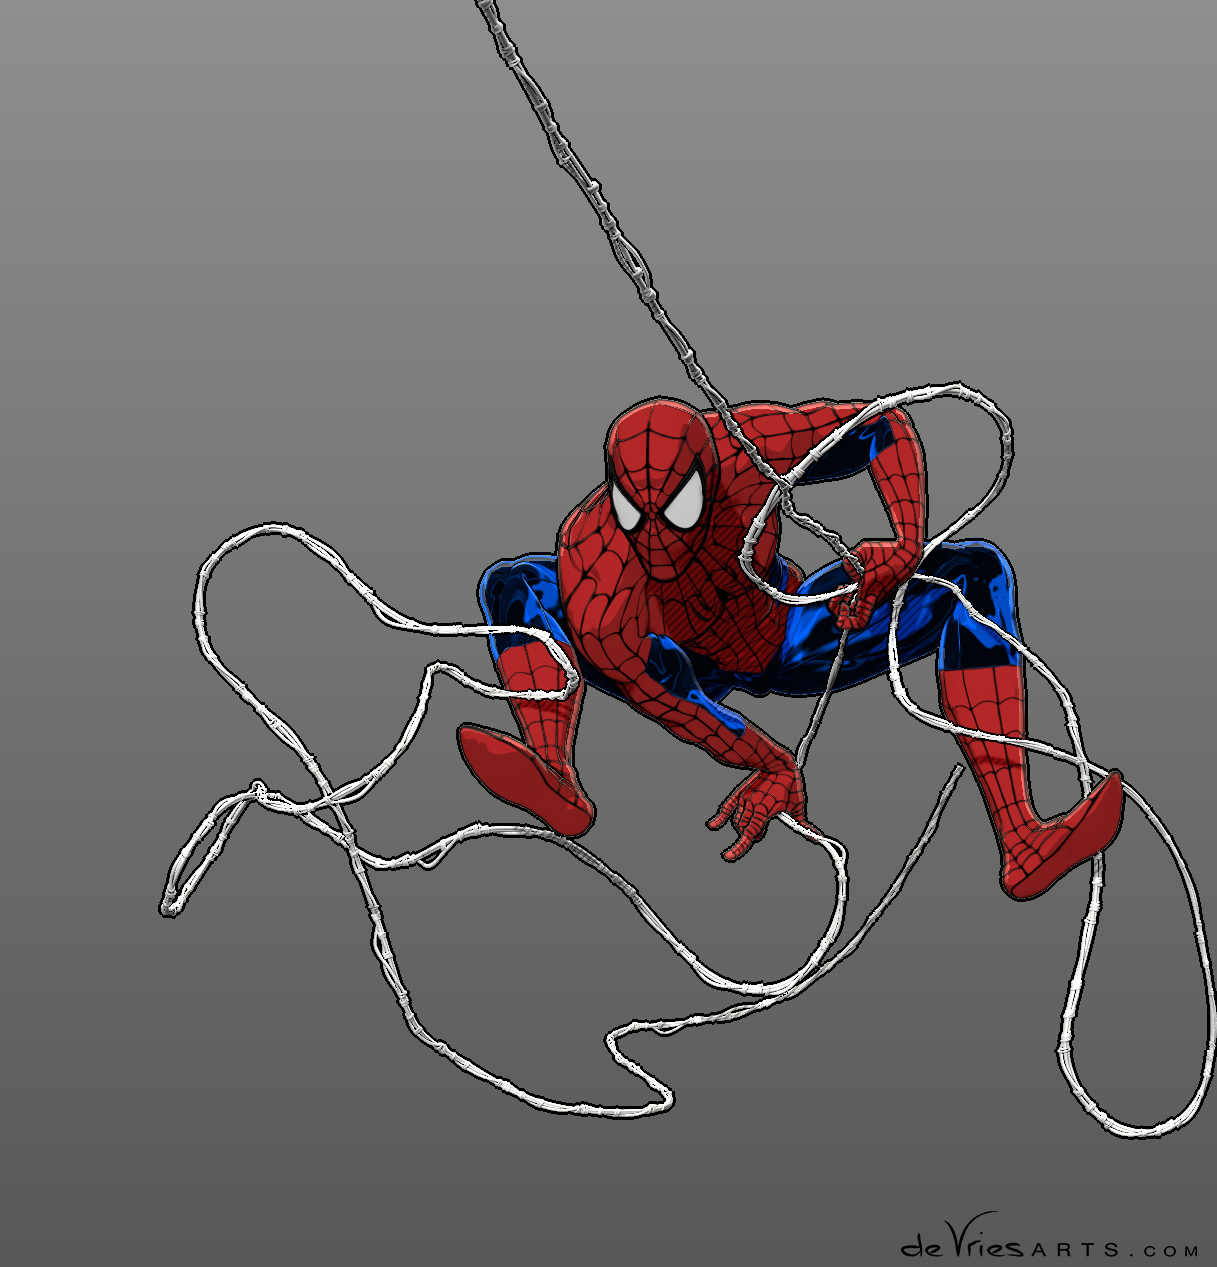 spideyComic3d1_ThijsDeVries.jpg